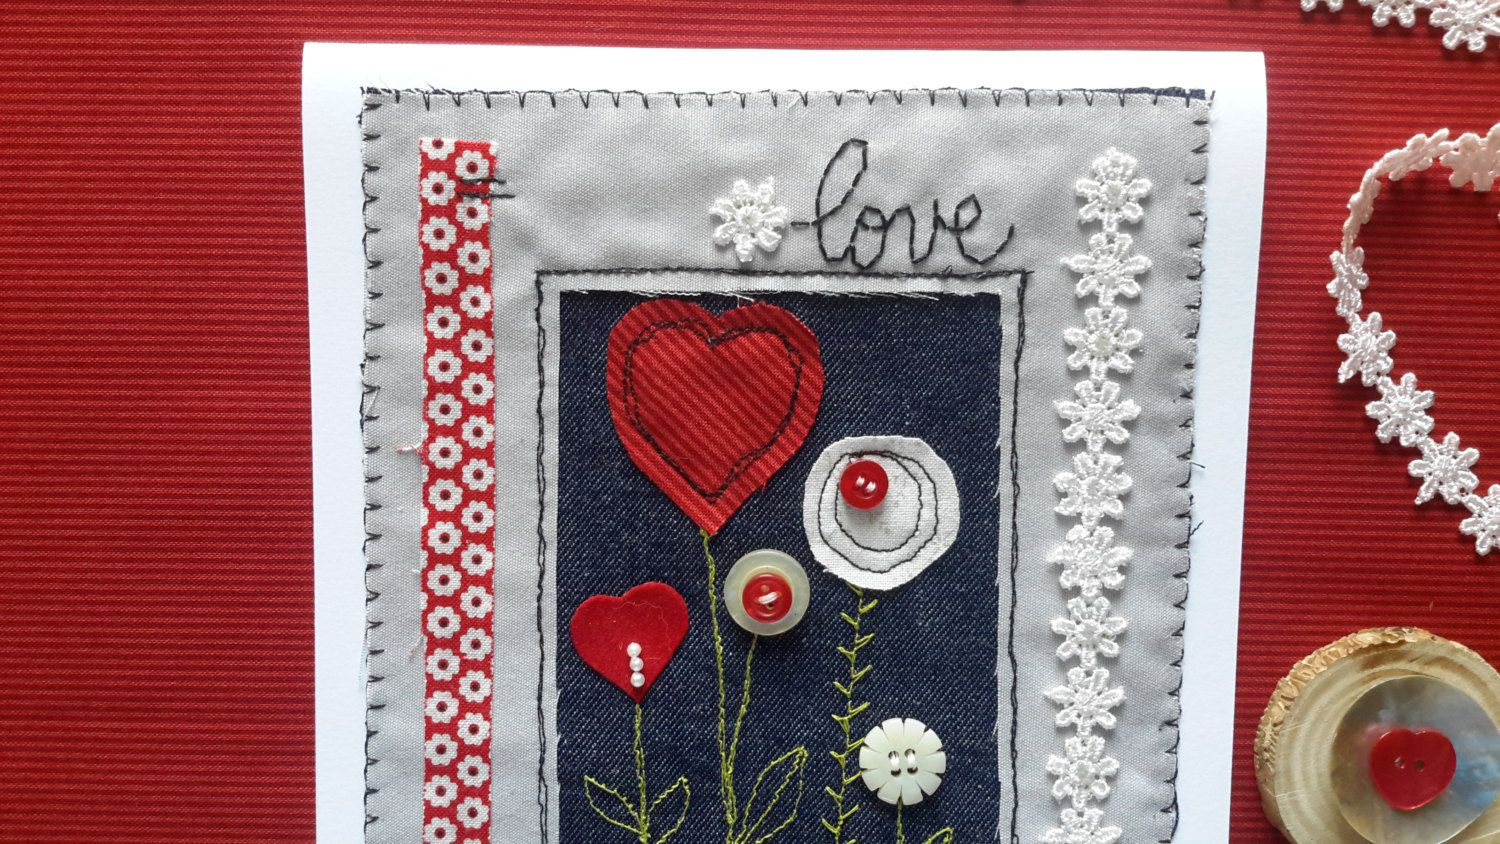 Greeting card machine embroidered fabric applique birthday love items similar to greeting card machine embroidered fabric applique handmade fabric greetings cards on etsy m4hsunfo